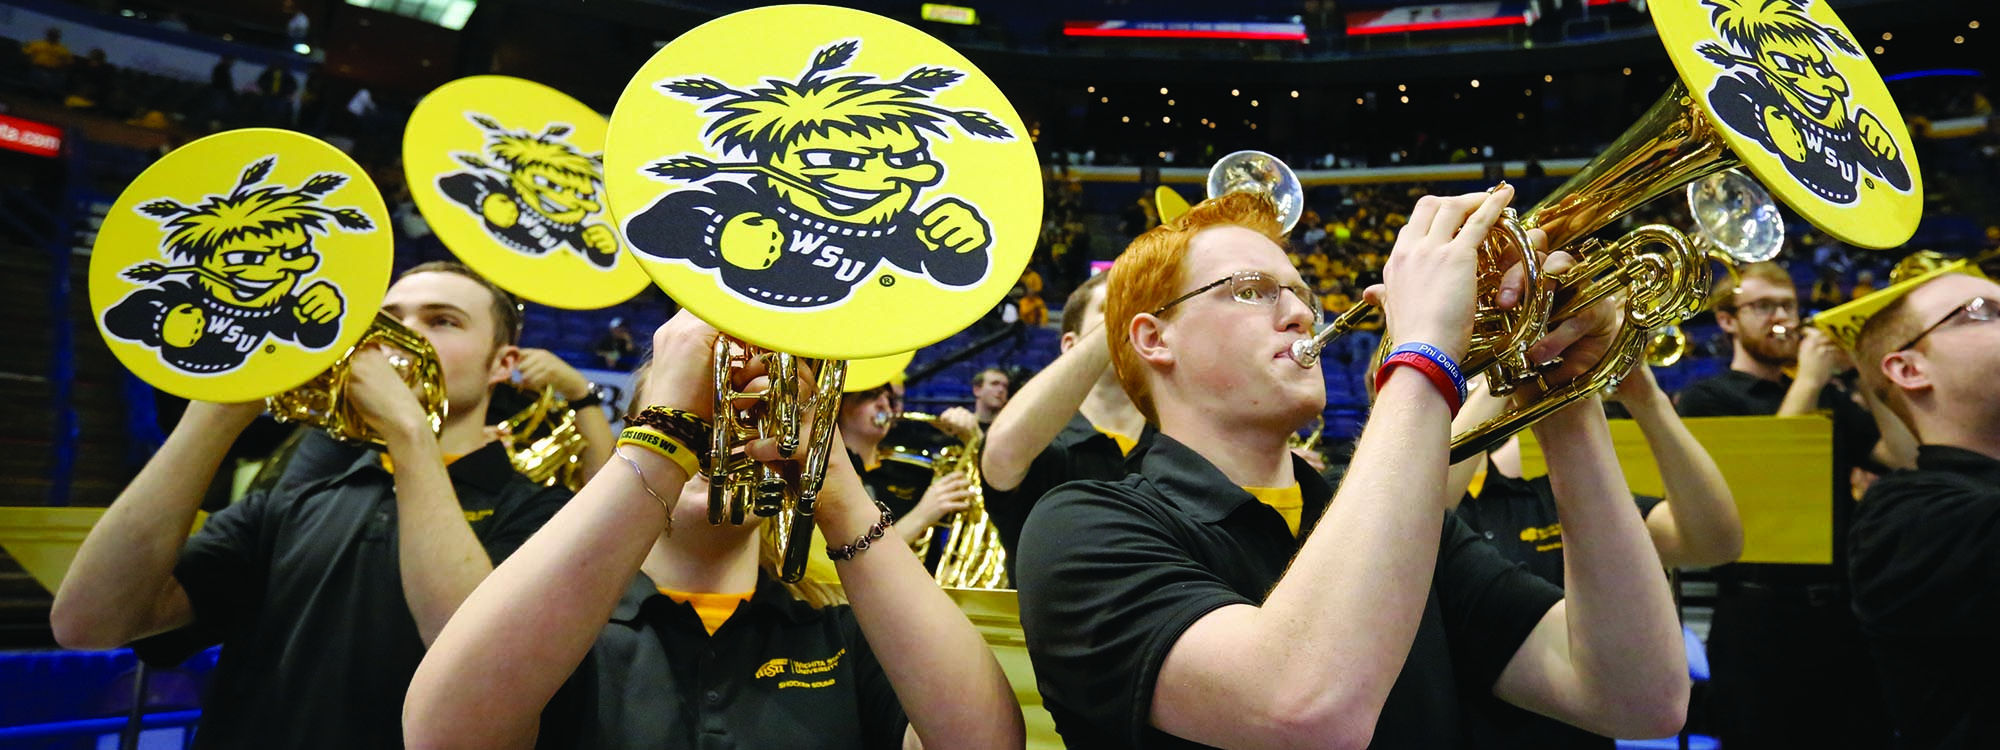 brass players at a basketball game